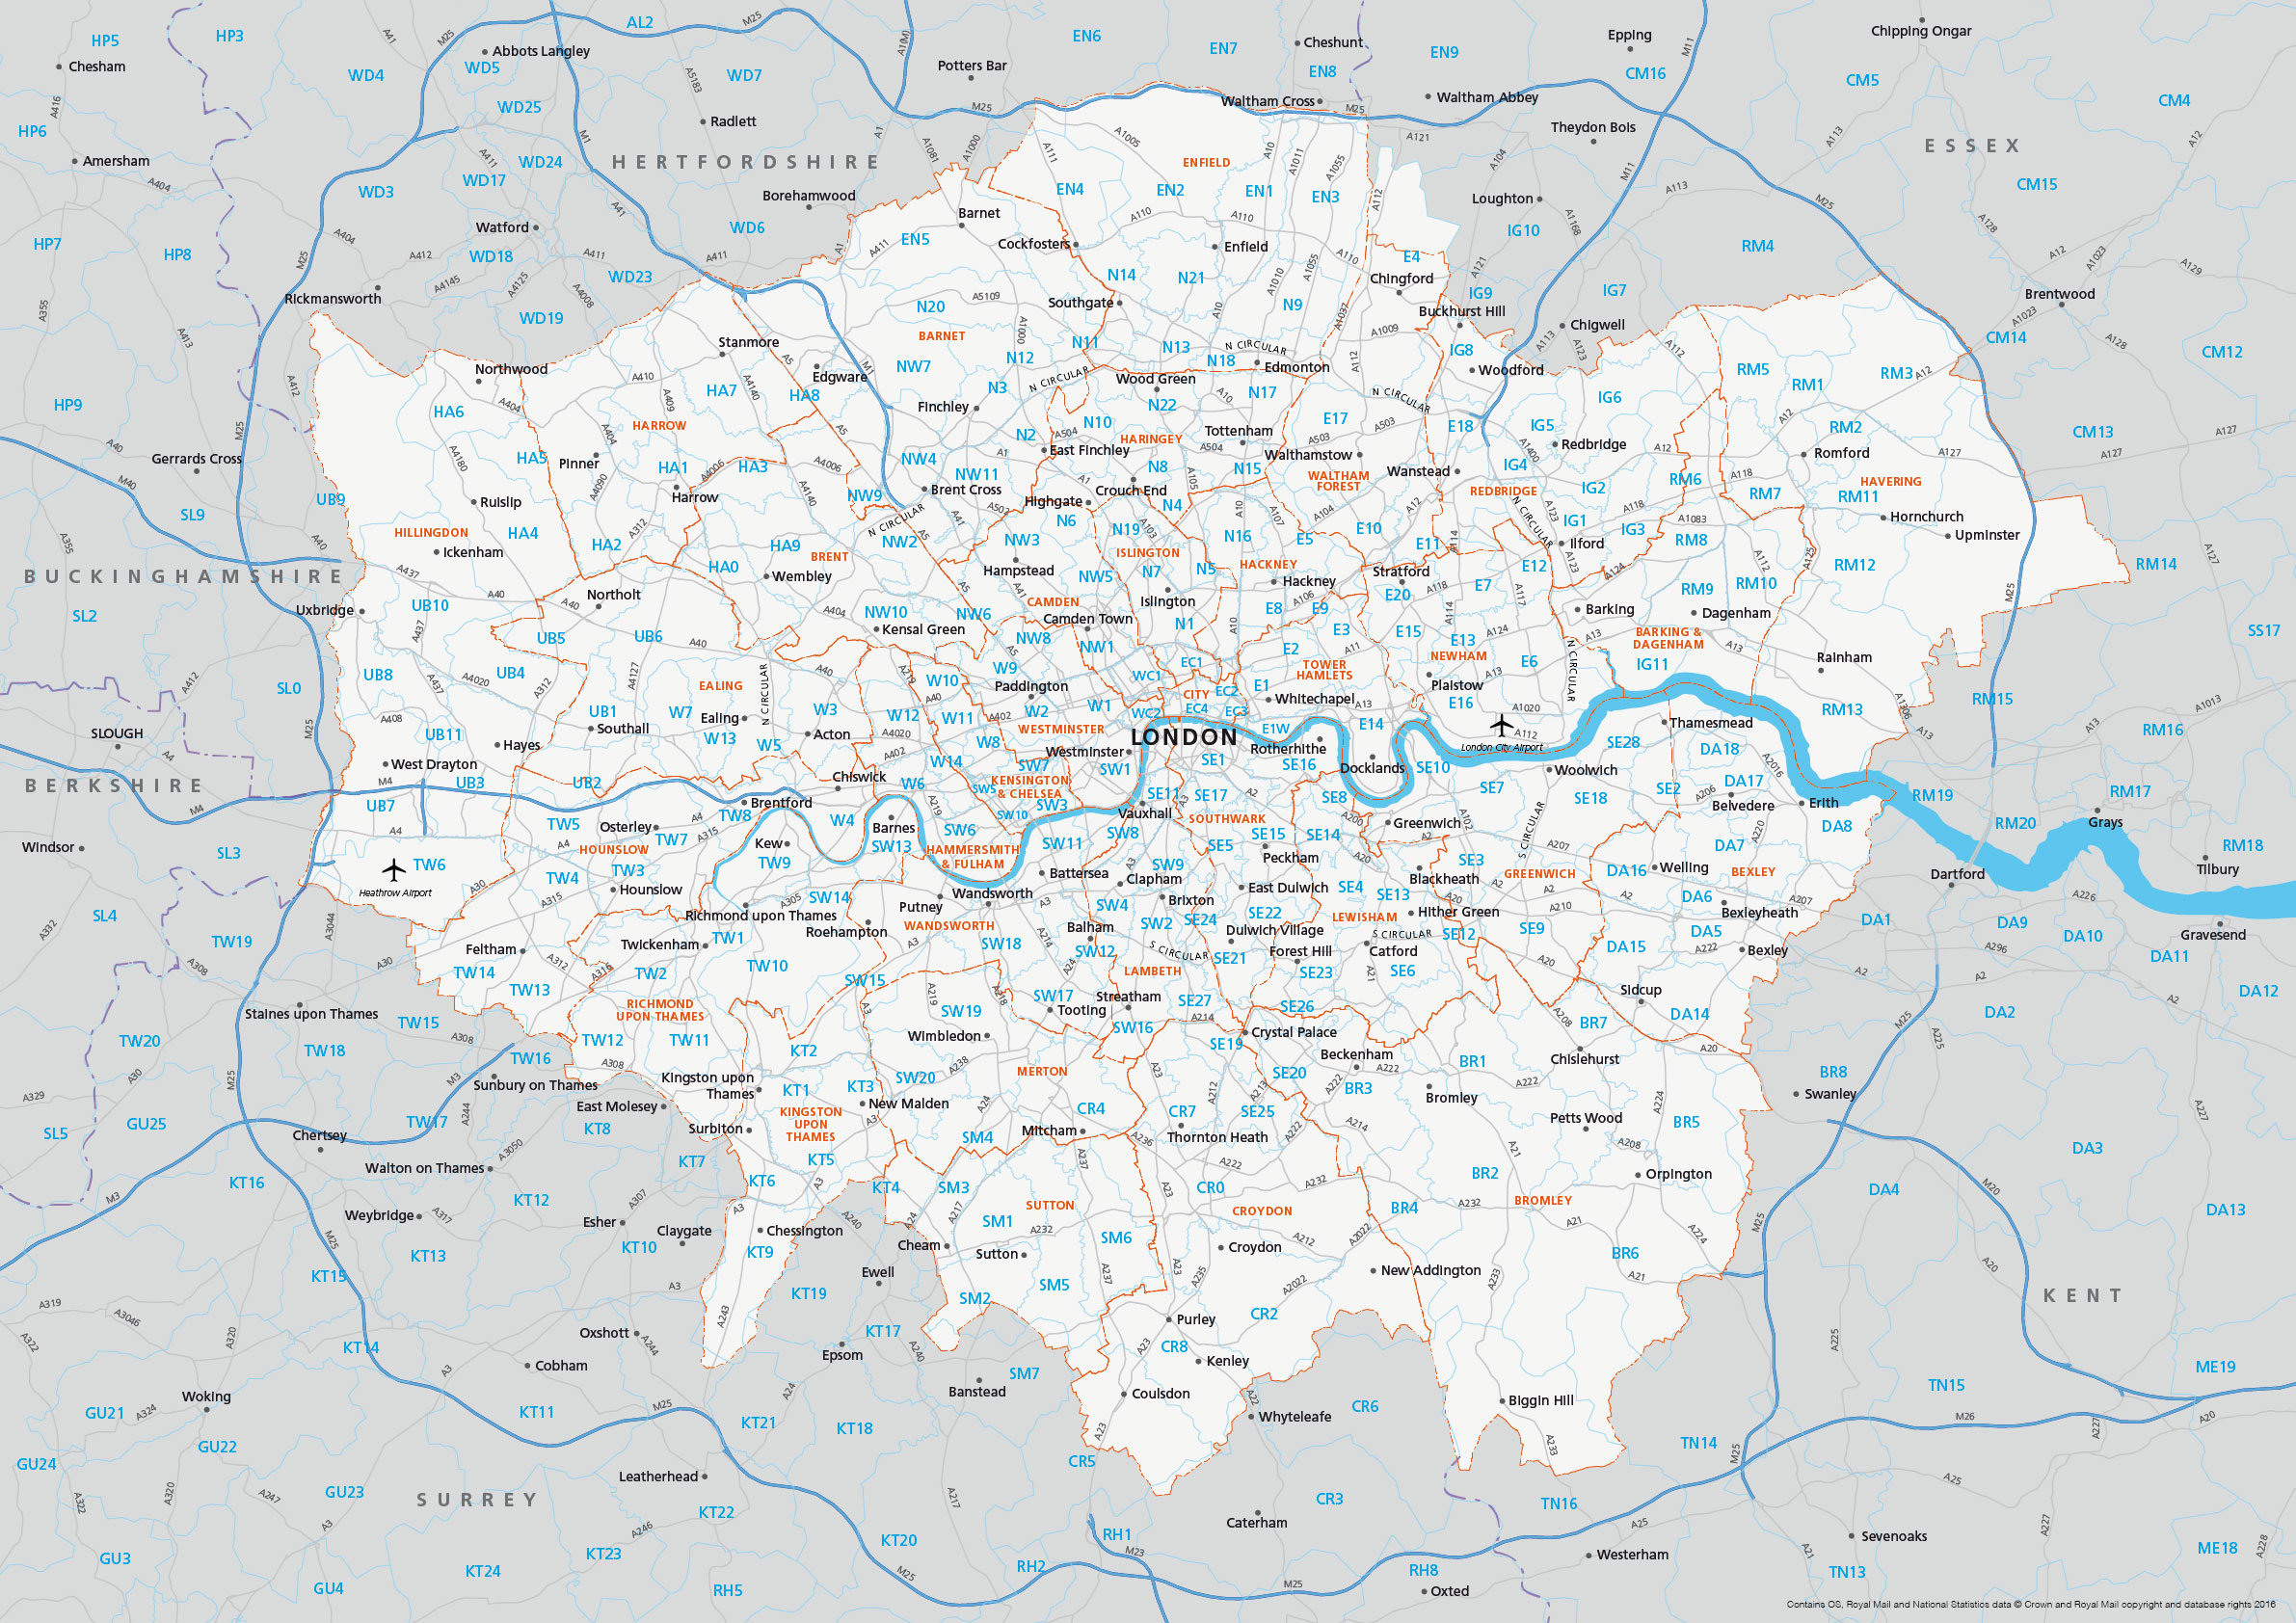 High Resolution London Street Map.Map Of Greater London Postcode Districts Plus Boroughs And